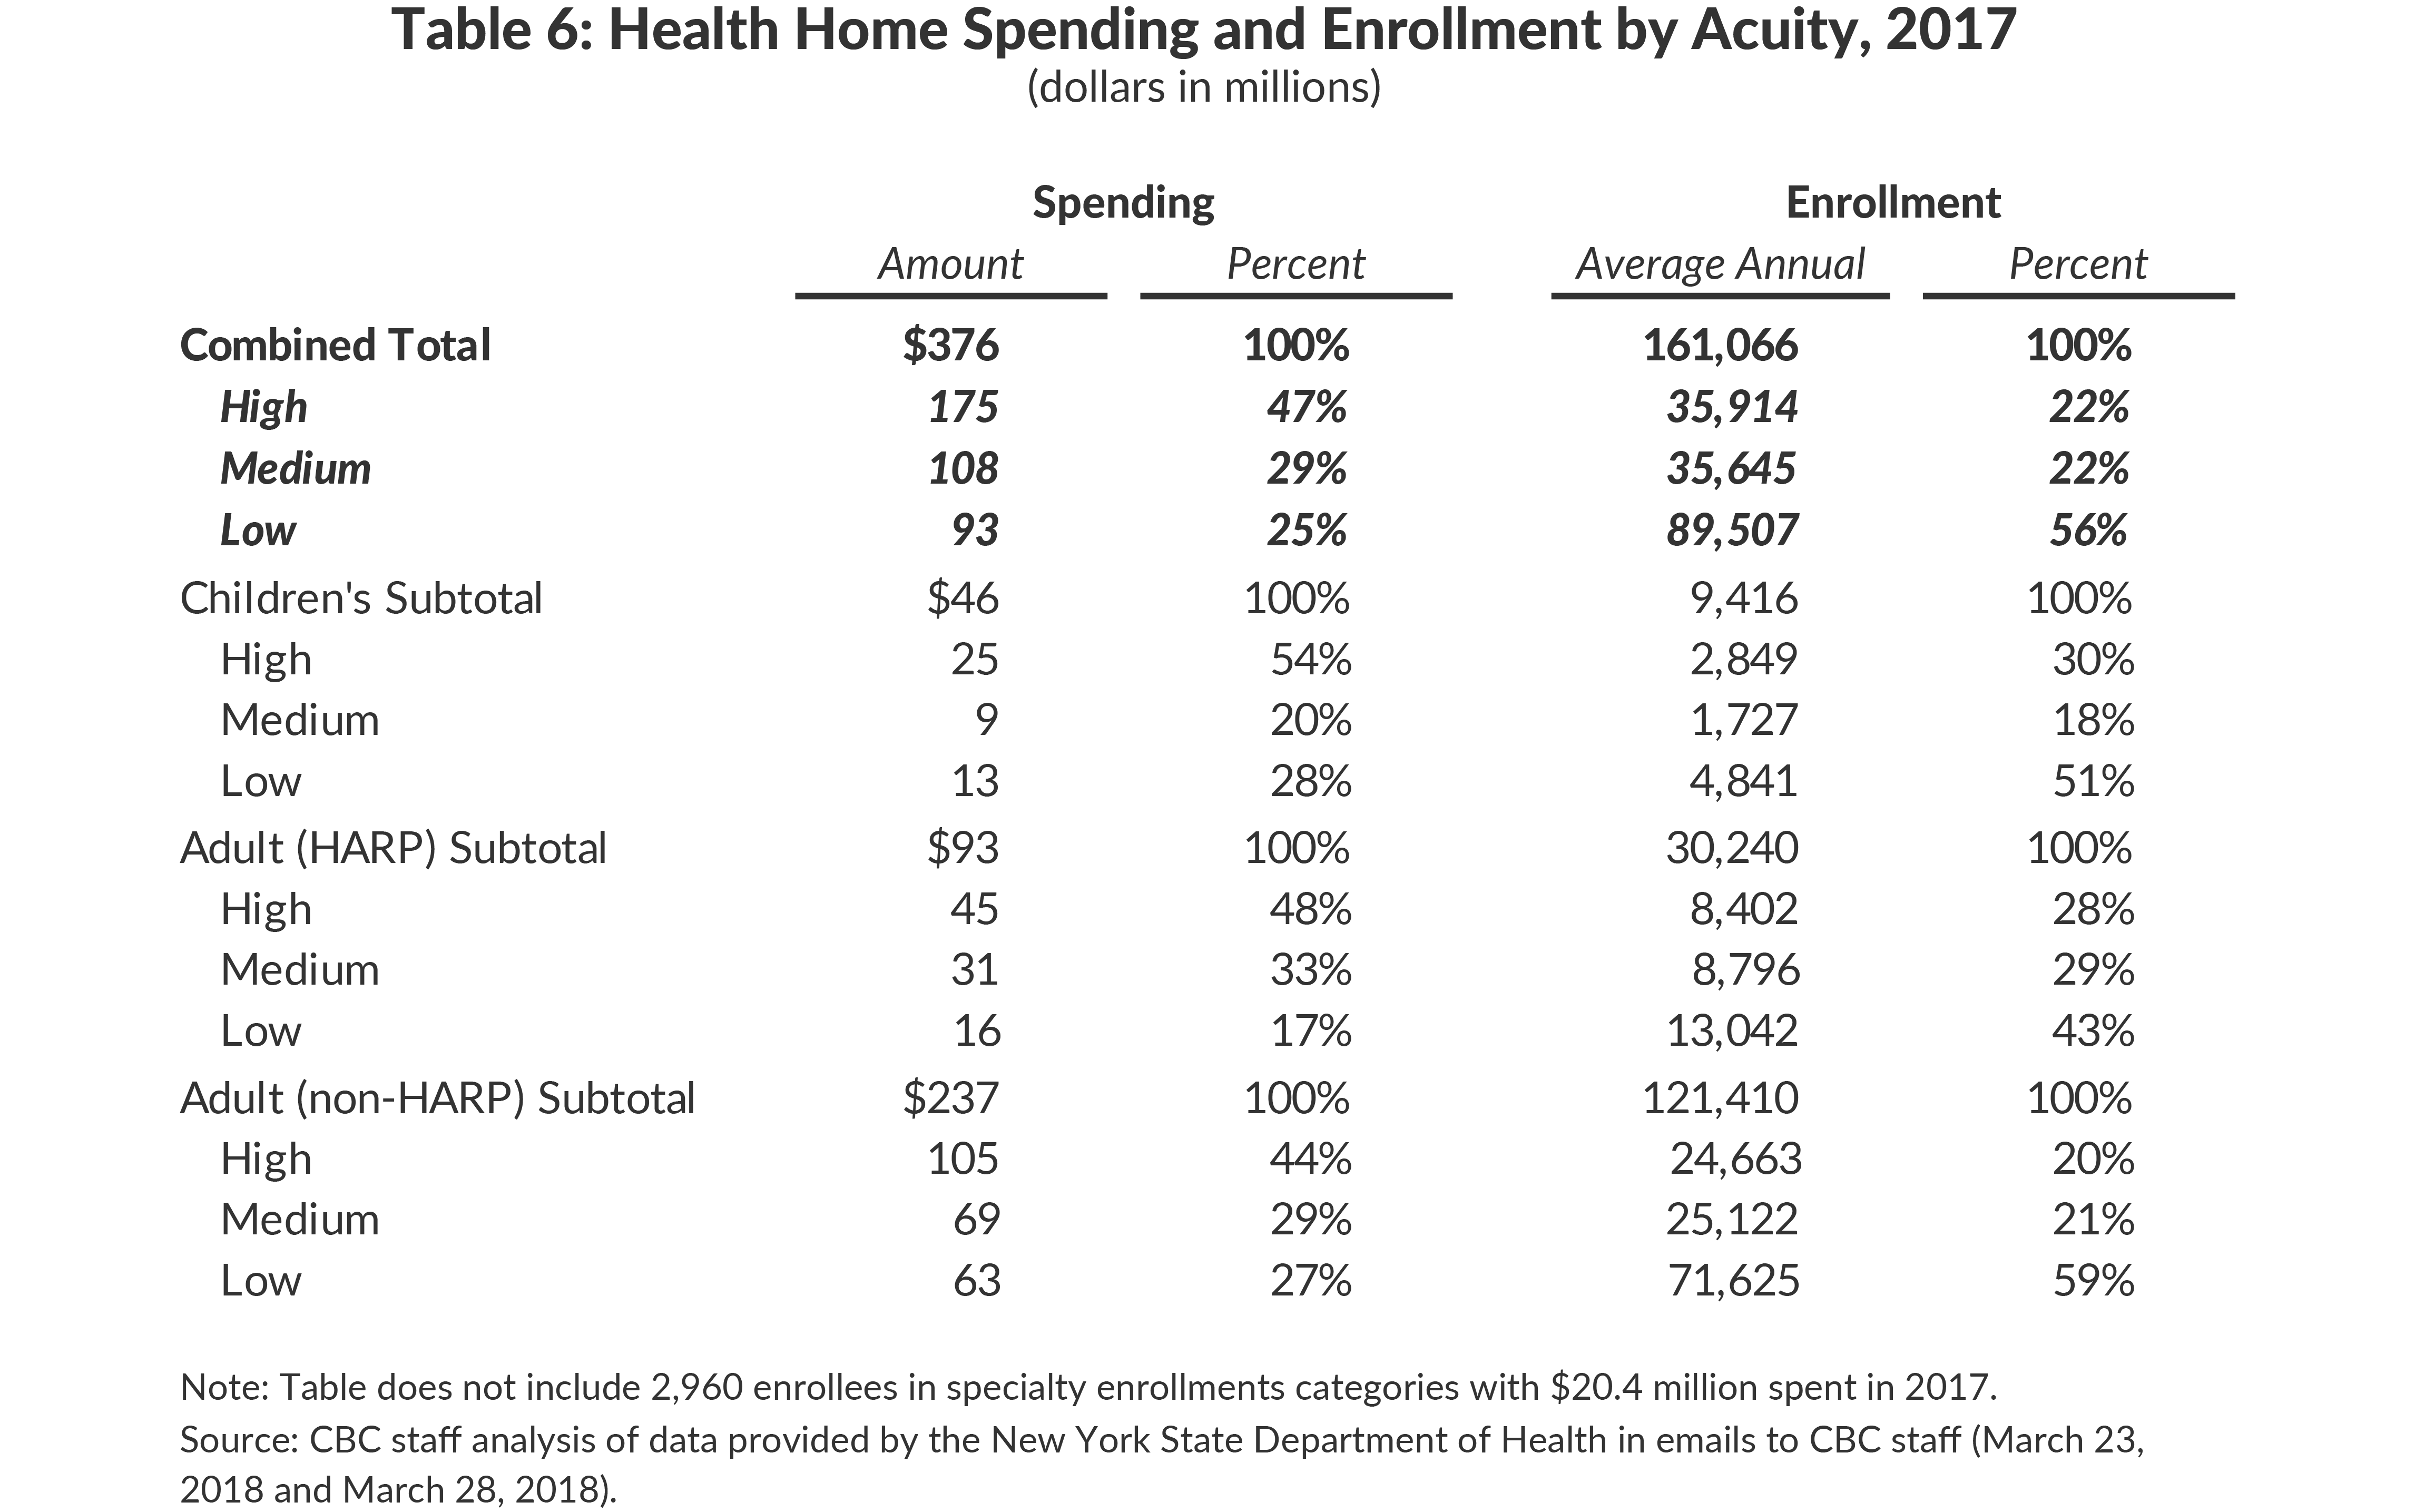 Table 6: Health Home Spending and Enrollment by Acuity, 2017